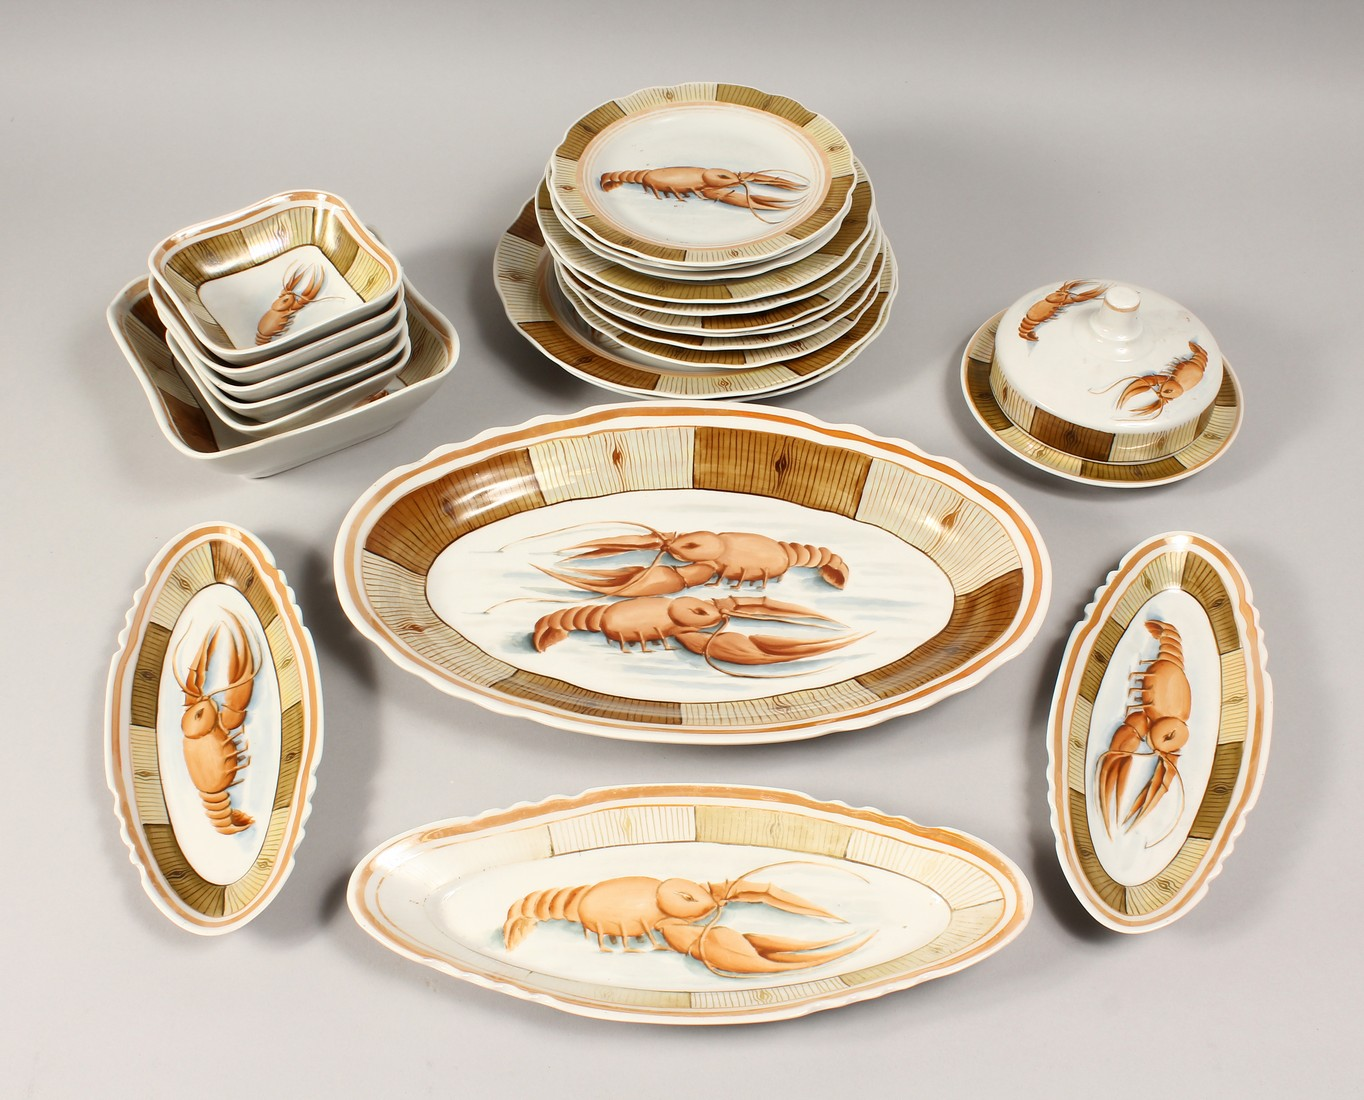 A RUSSIAN PORCELAIN SERVICE decorated with shell fish, comprising a pair of plates, 9.5ins diameter,